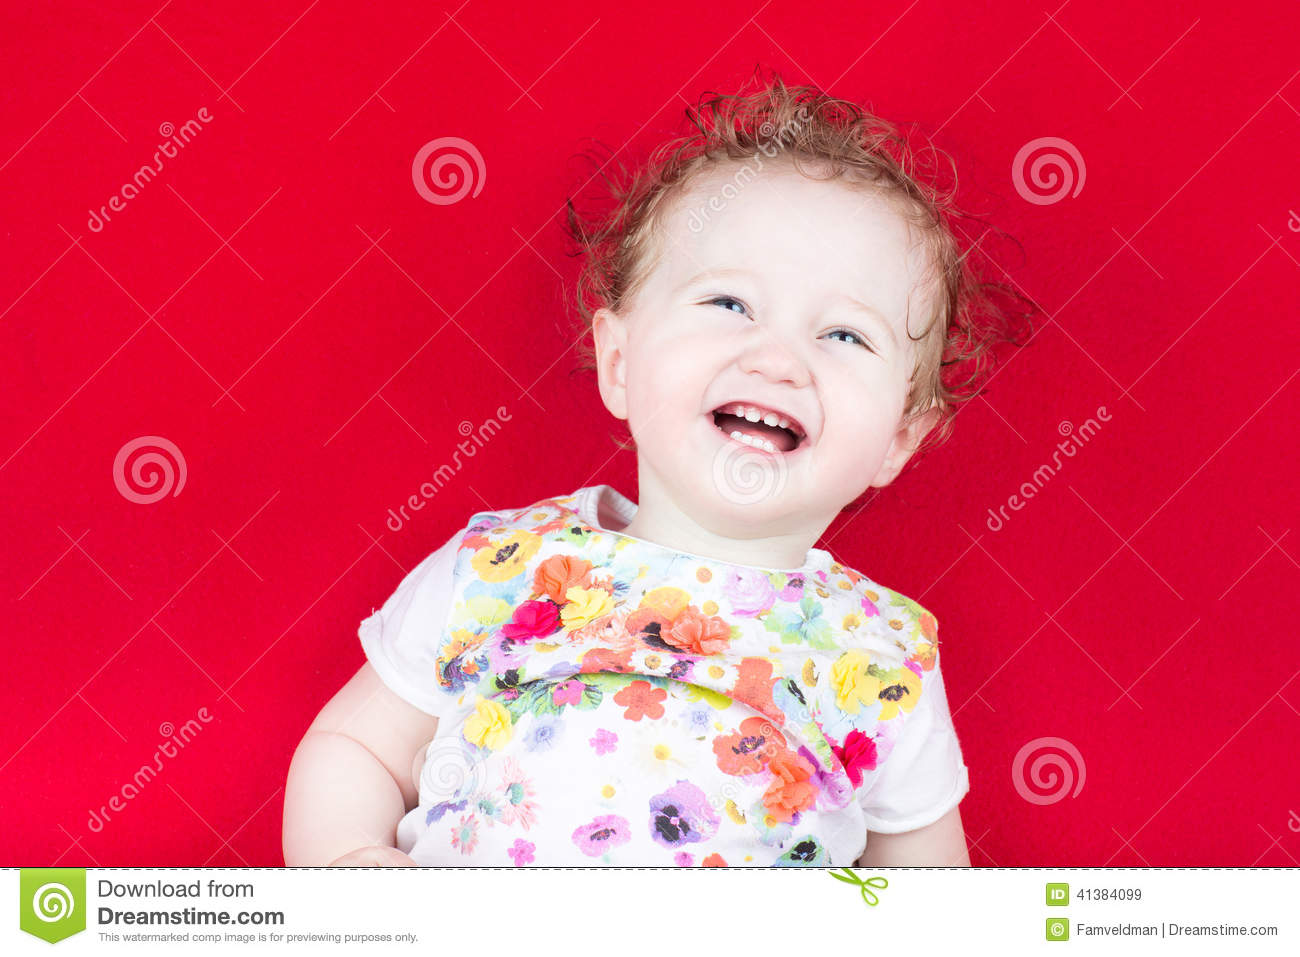 911c11901 Happy Laughing Baby On A Red Blanket Stock Image - Image of girl ...